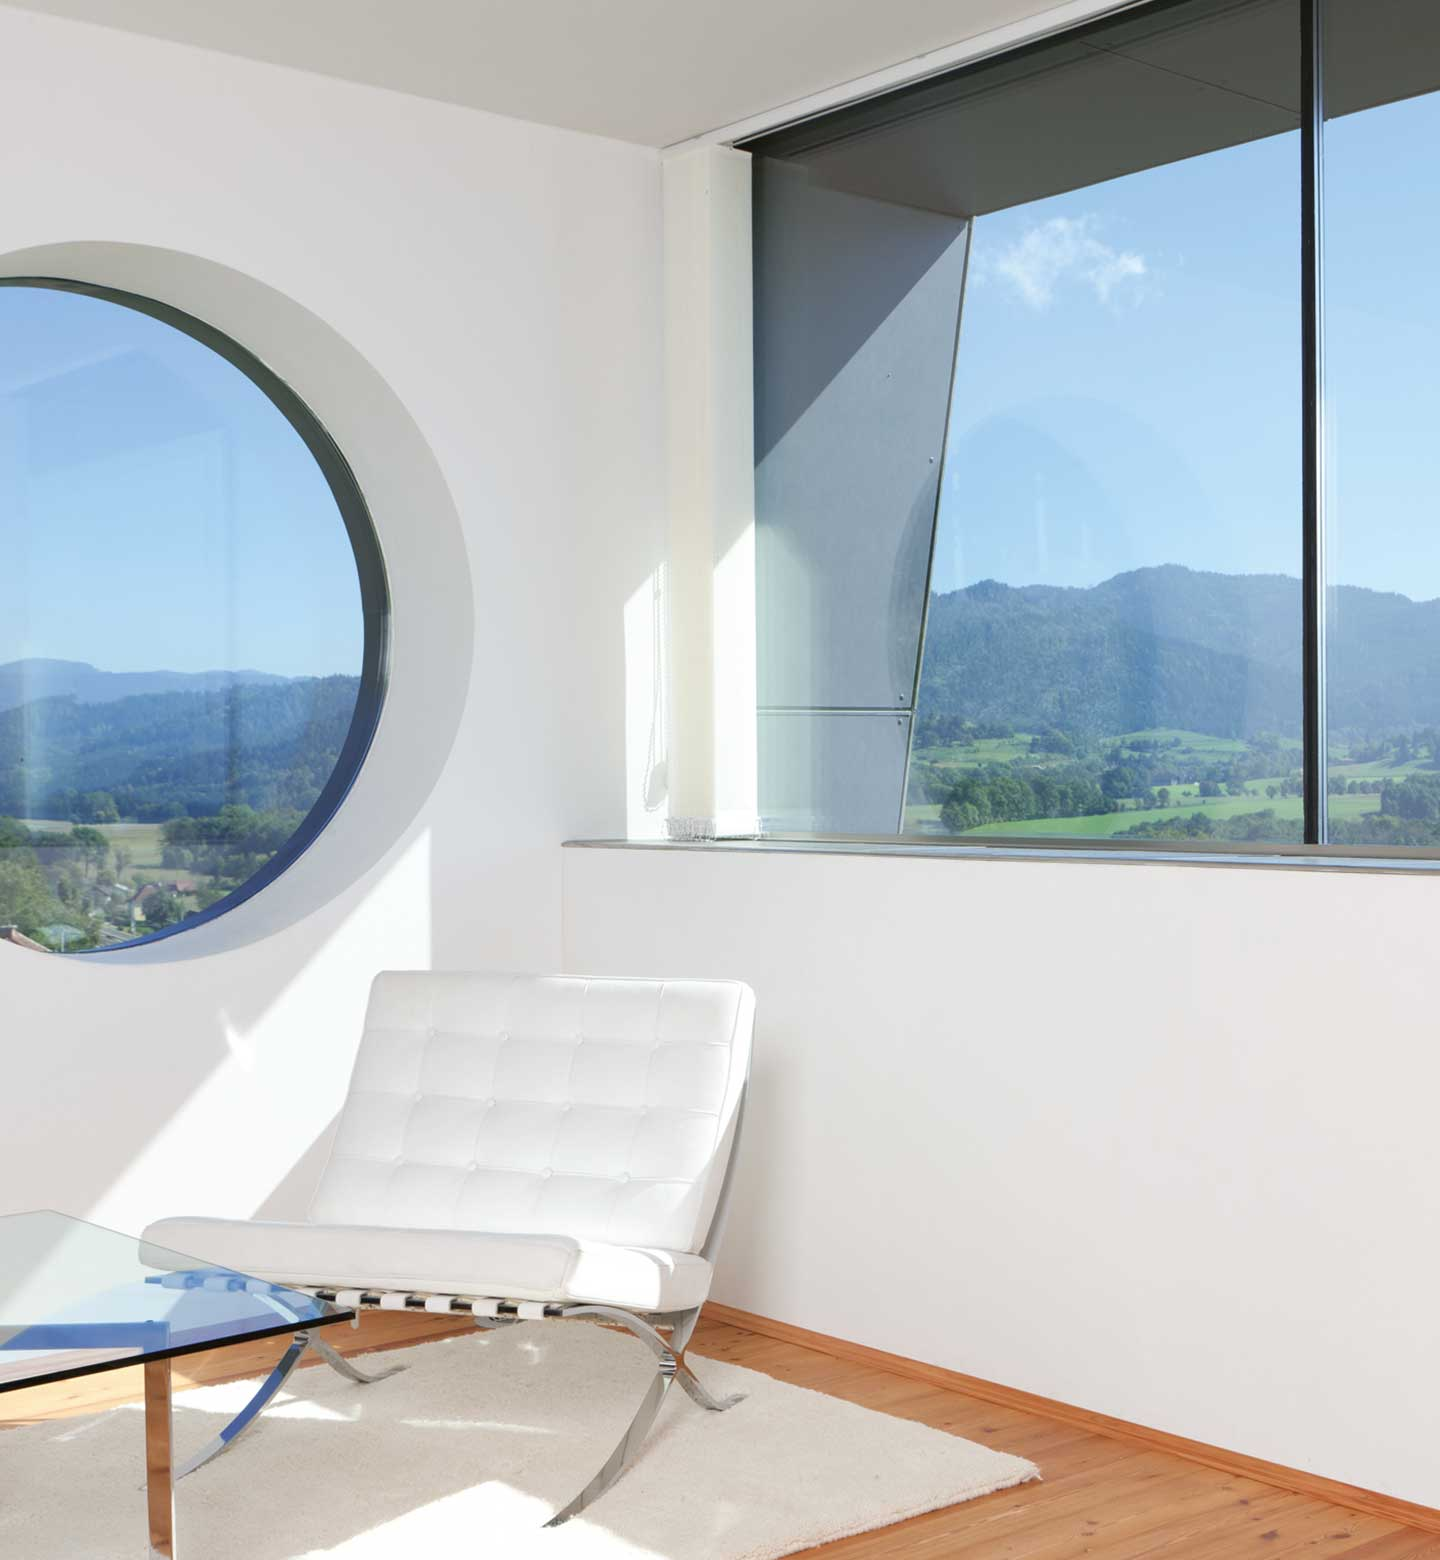 Round window in a serene living room